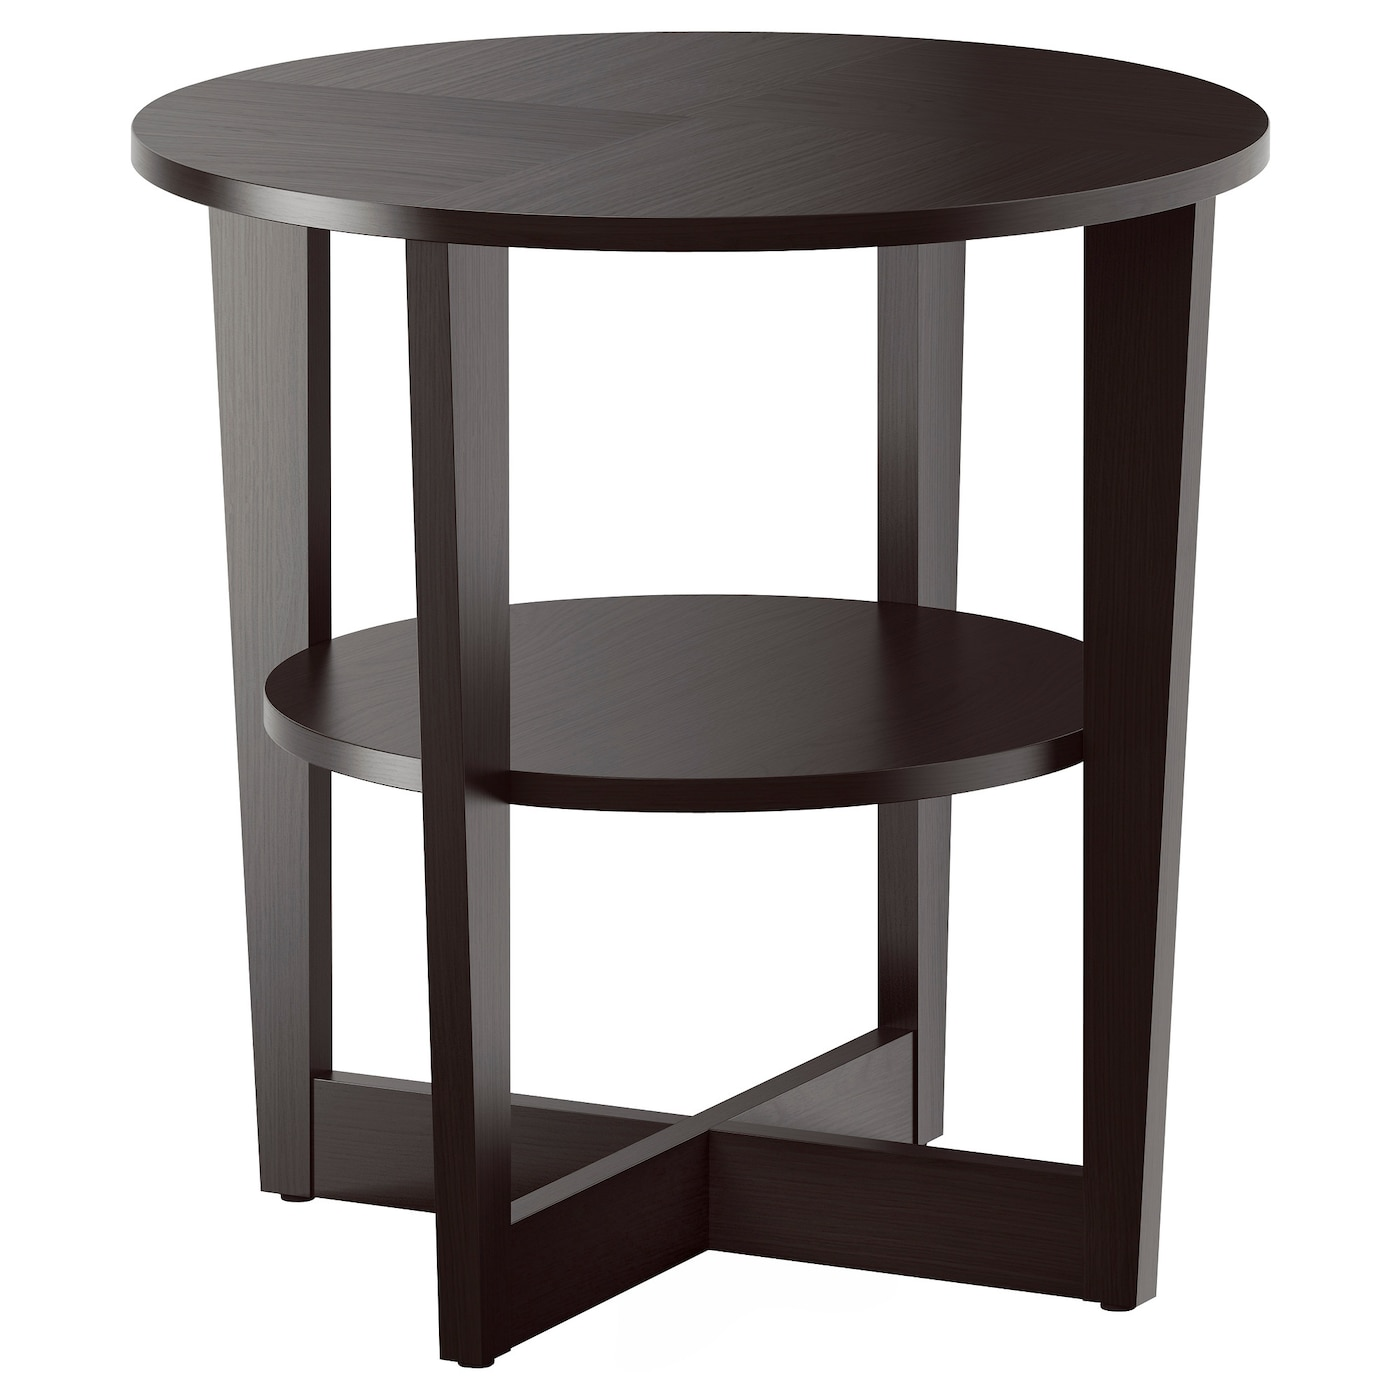 vejmon side table black brown 60 cm ikea. Black Bedroom Furniture Sets. Home Design Ideas